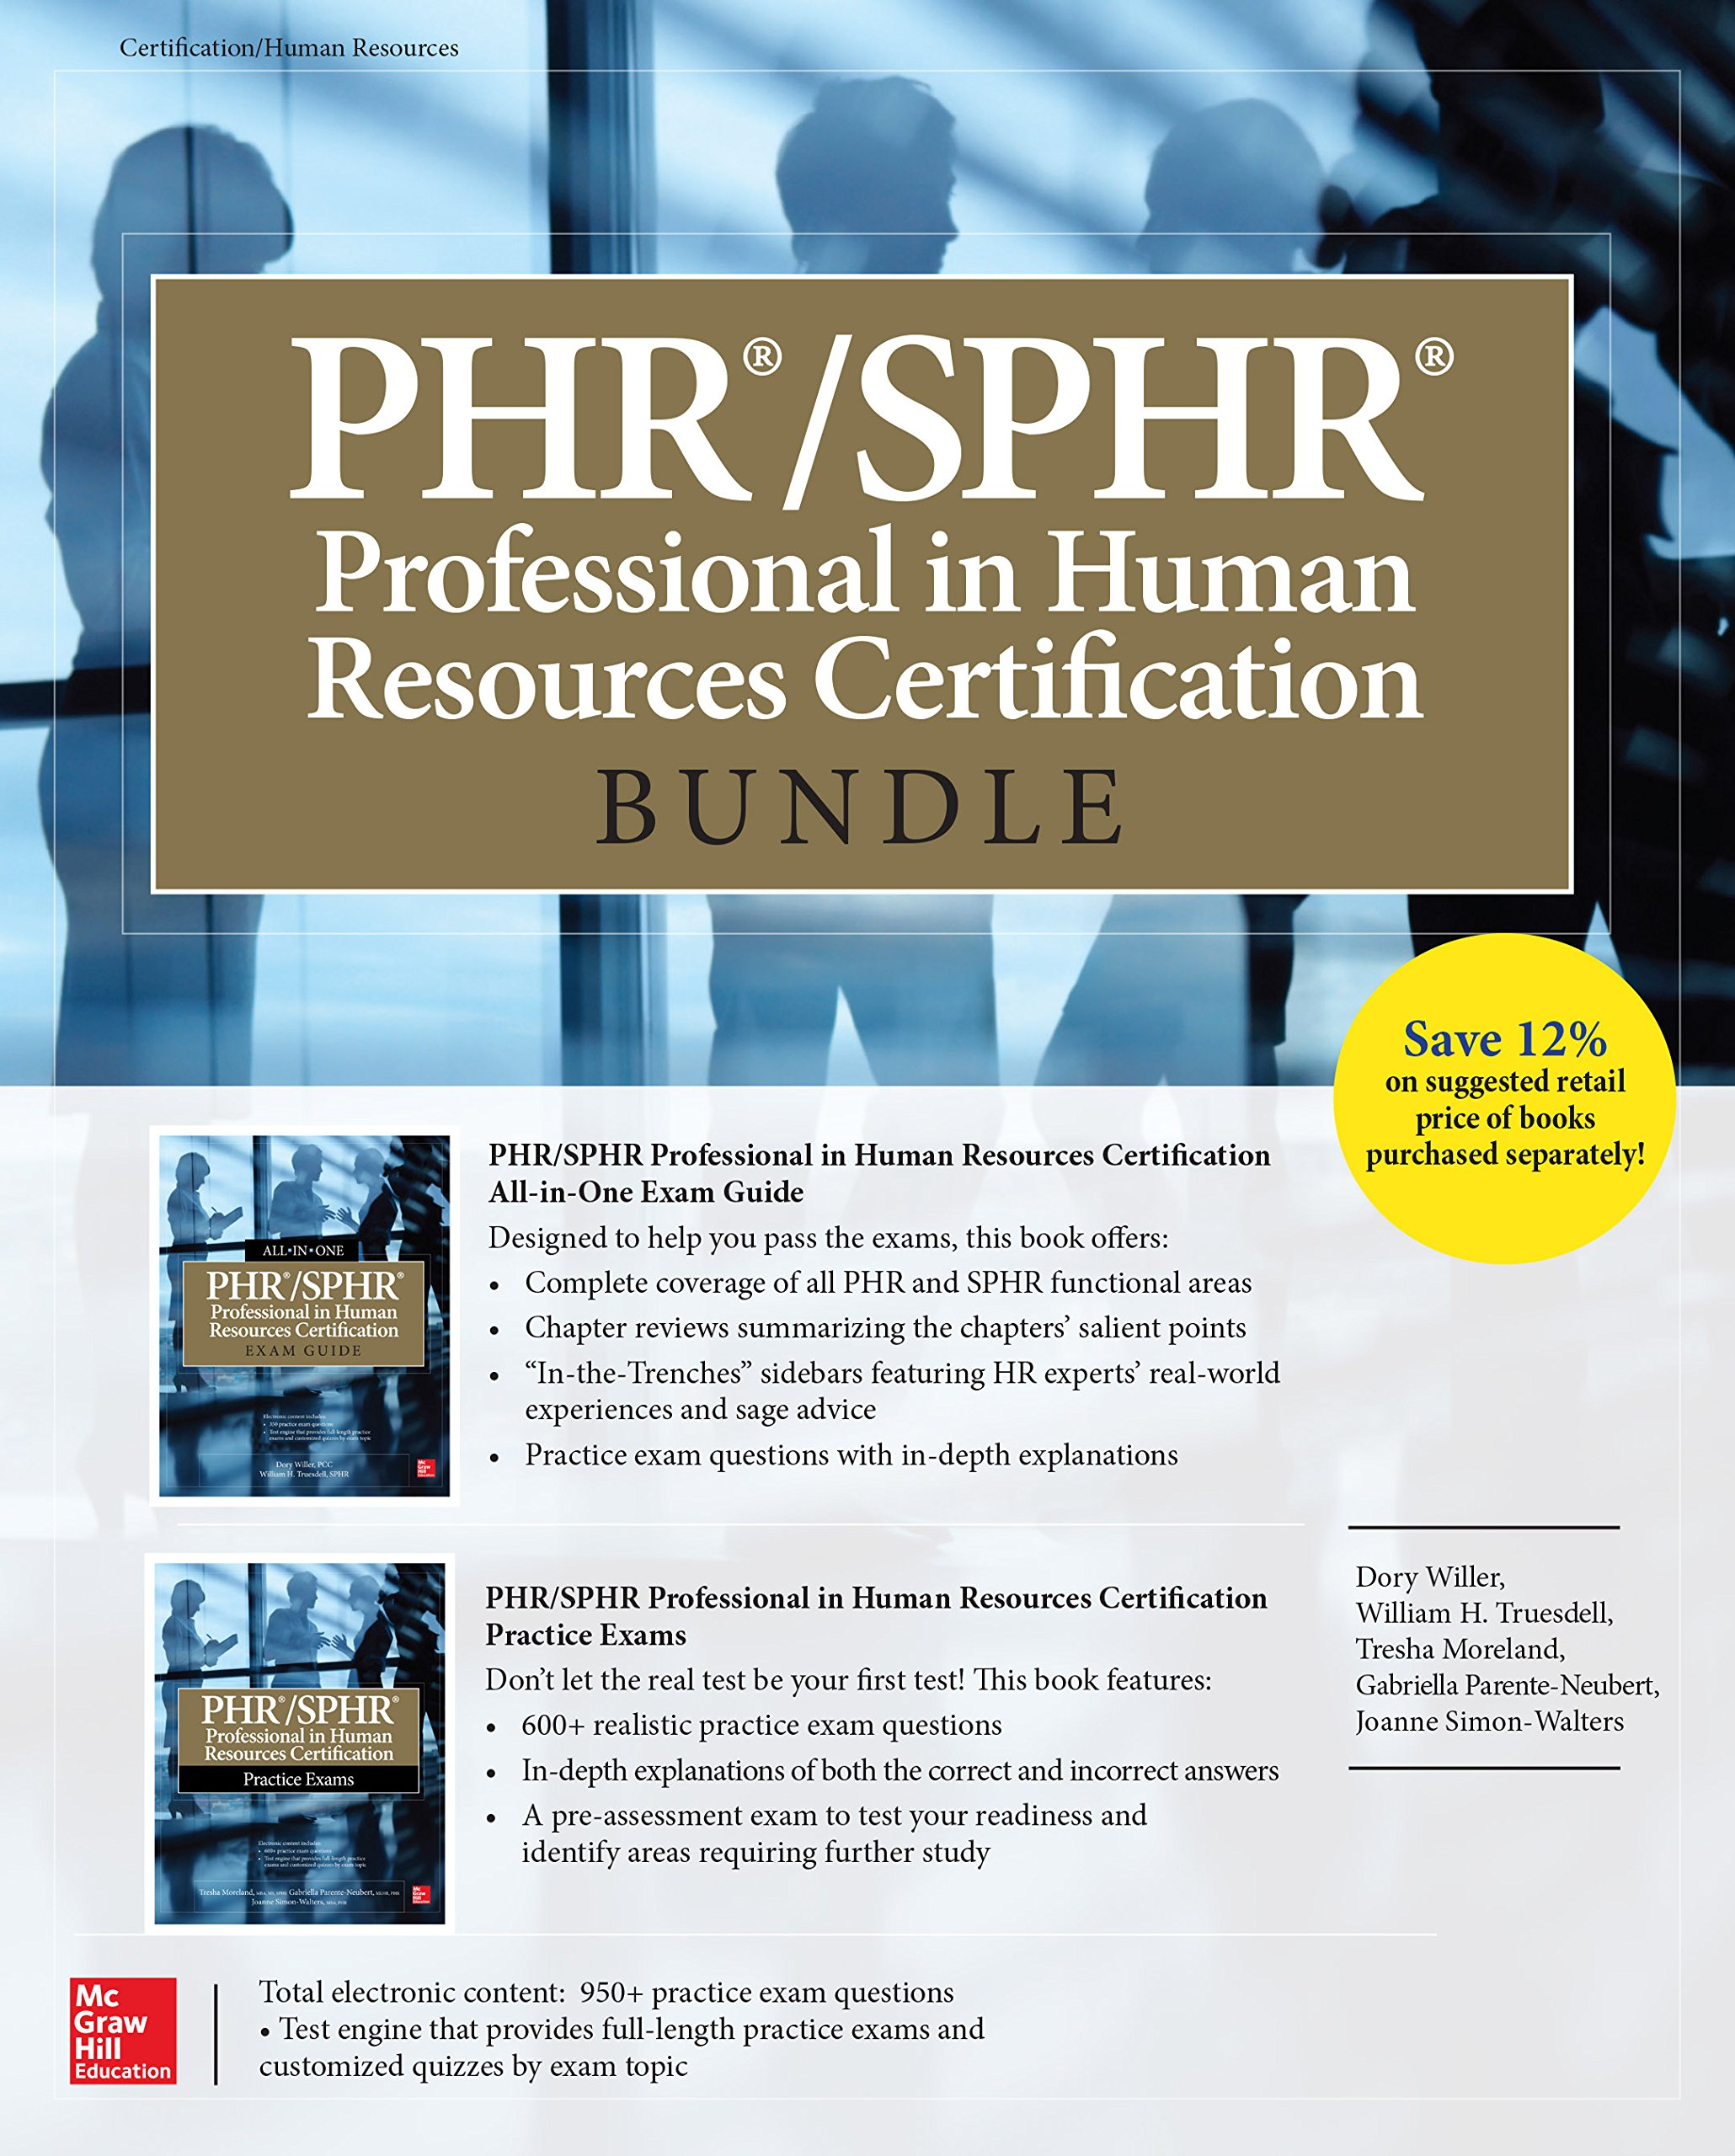 Image OfPHR/SPHR Professional In Human Resources Certification Bundle (All-in-One) (English Edition)